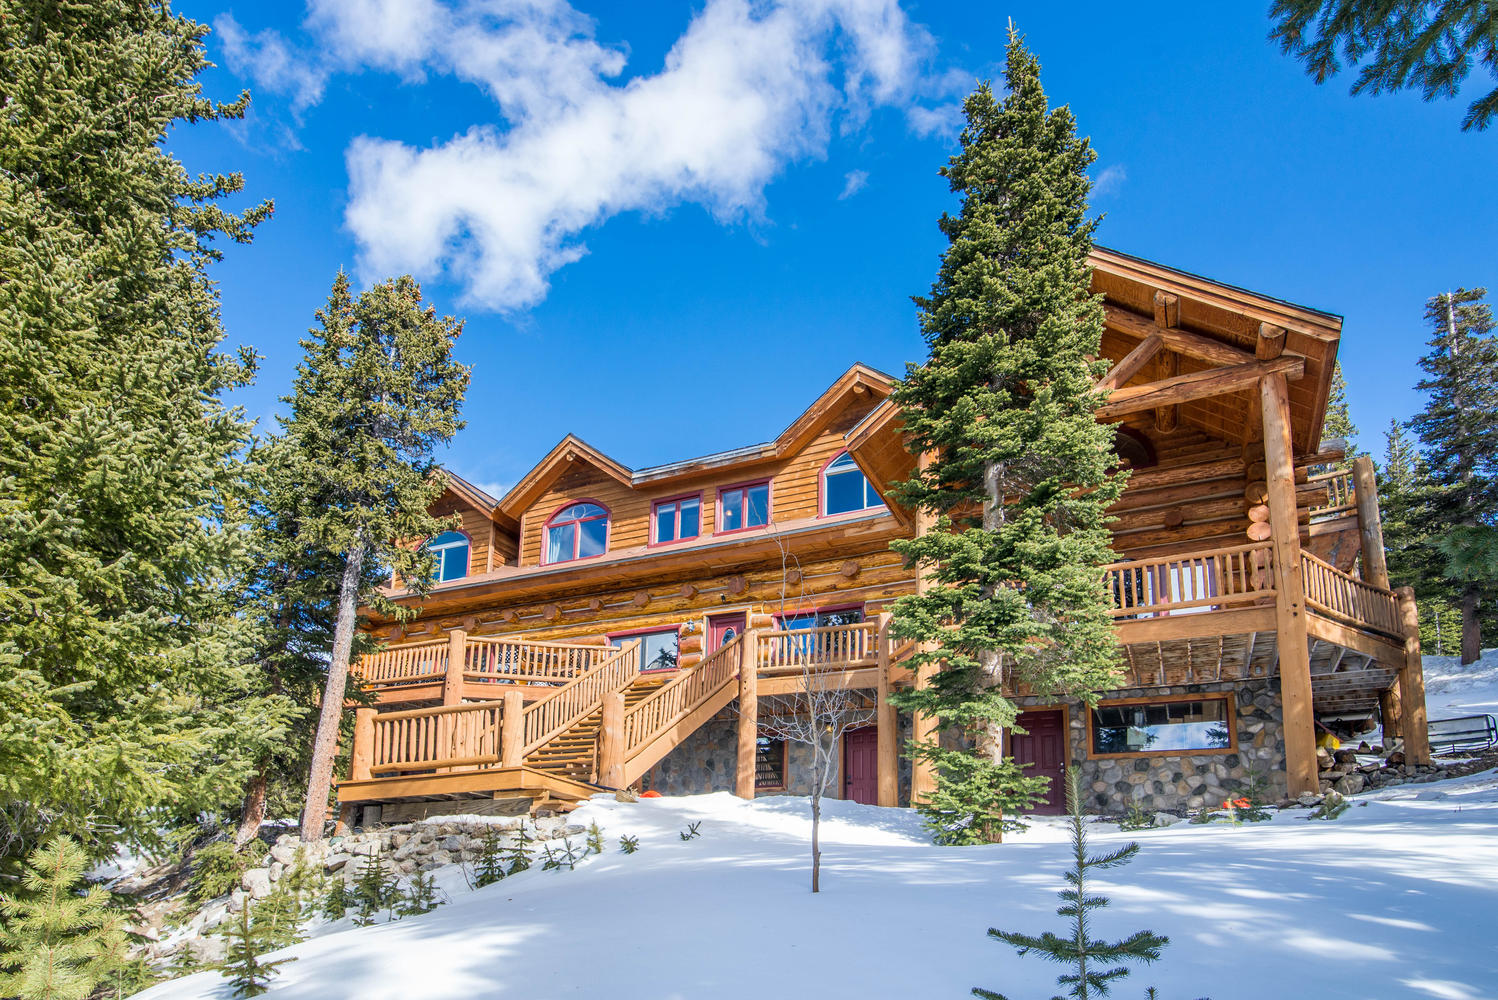 336 Crest Dr, Idaho Springs, CO 80452